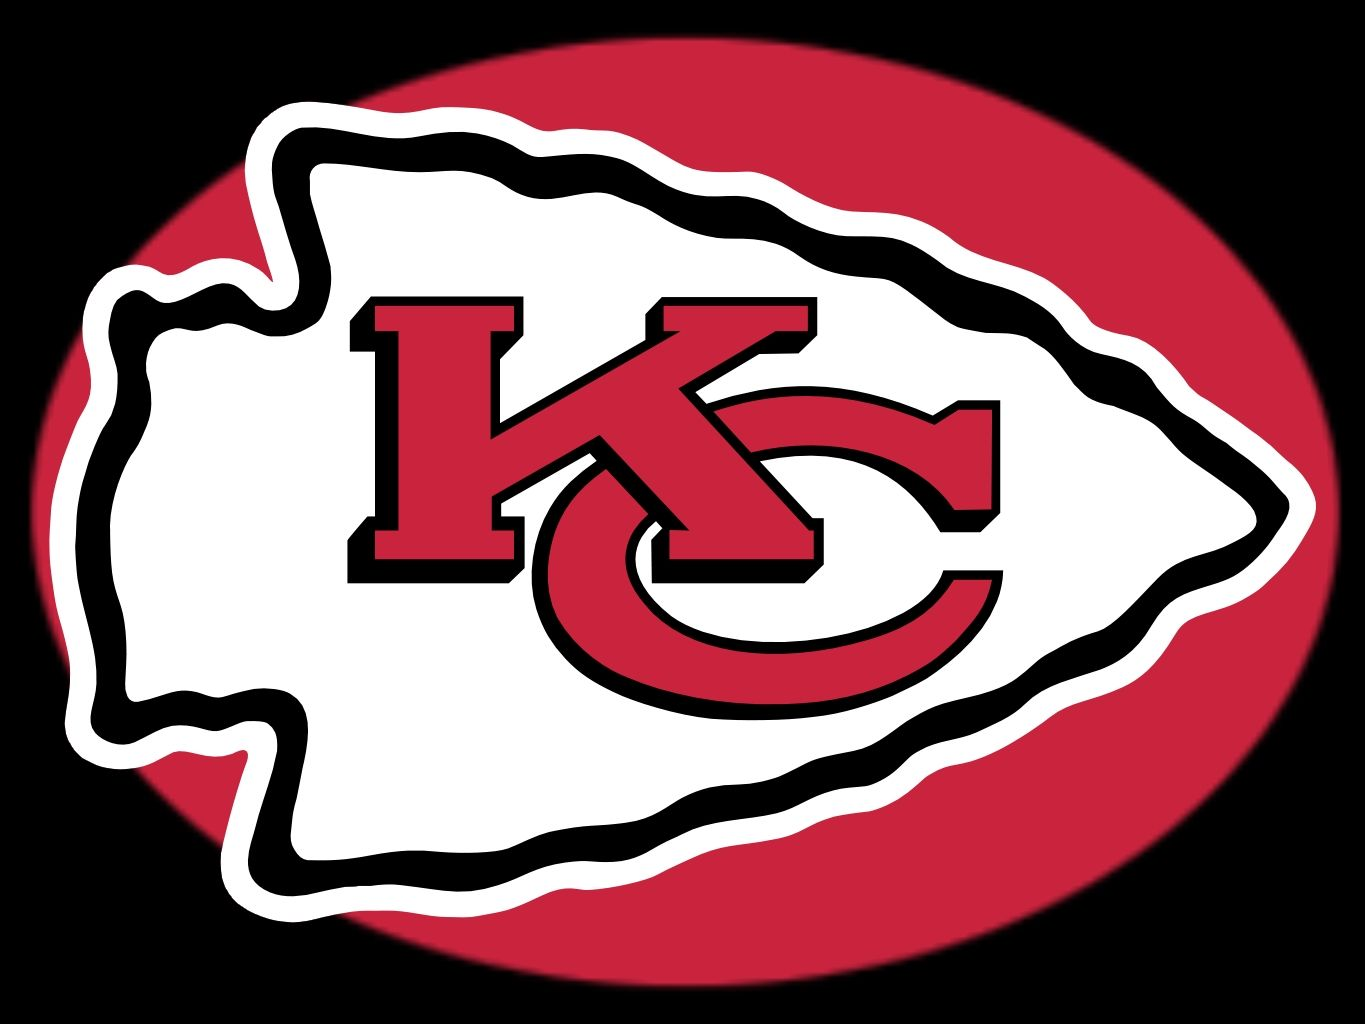 Kansas City Chiefs Kansas City Chiefs Logo Kansas City Chiefs Nfl Kansas City Chiefs